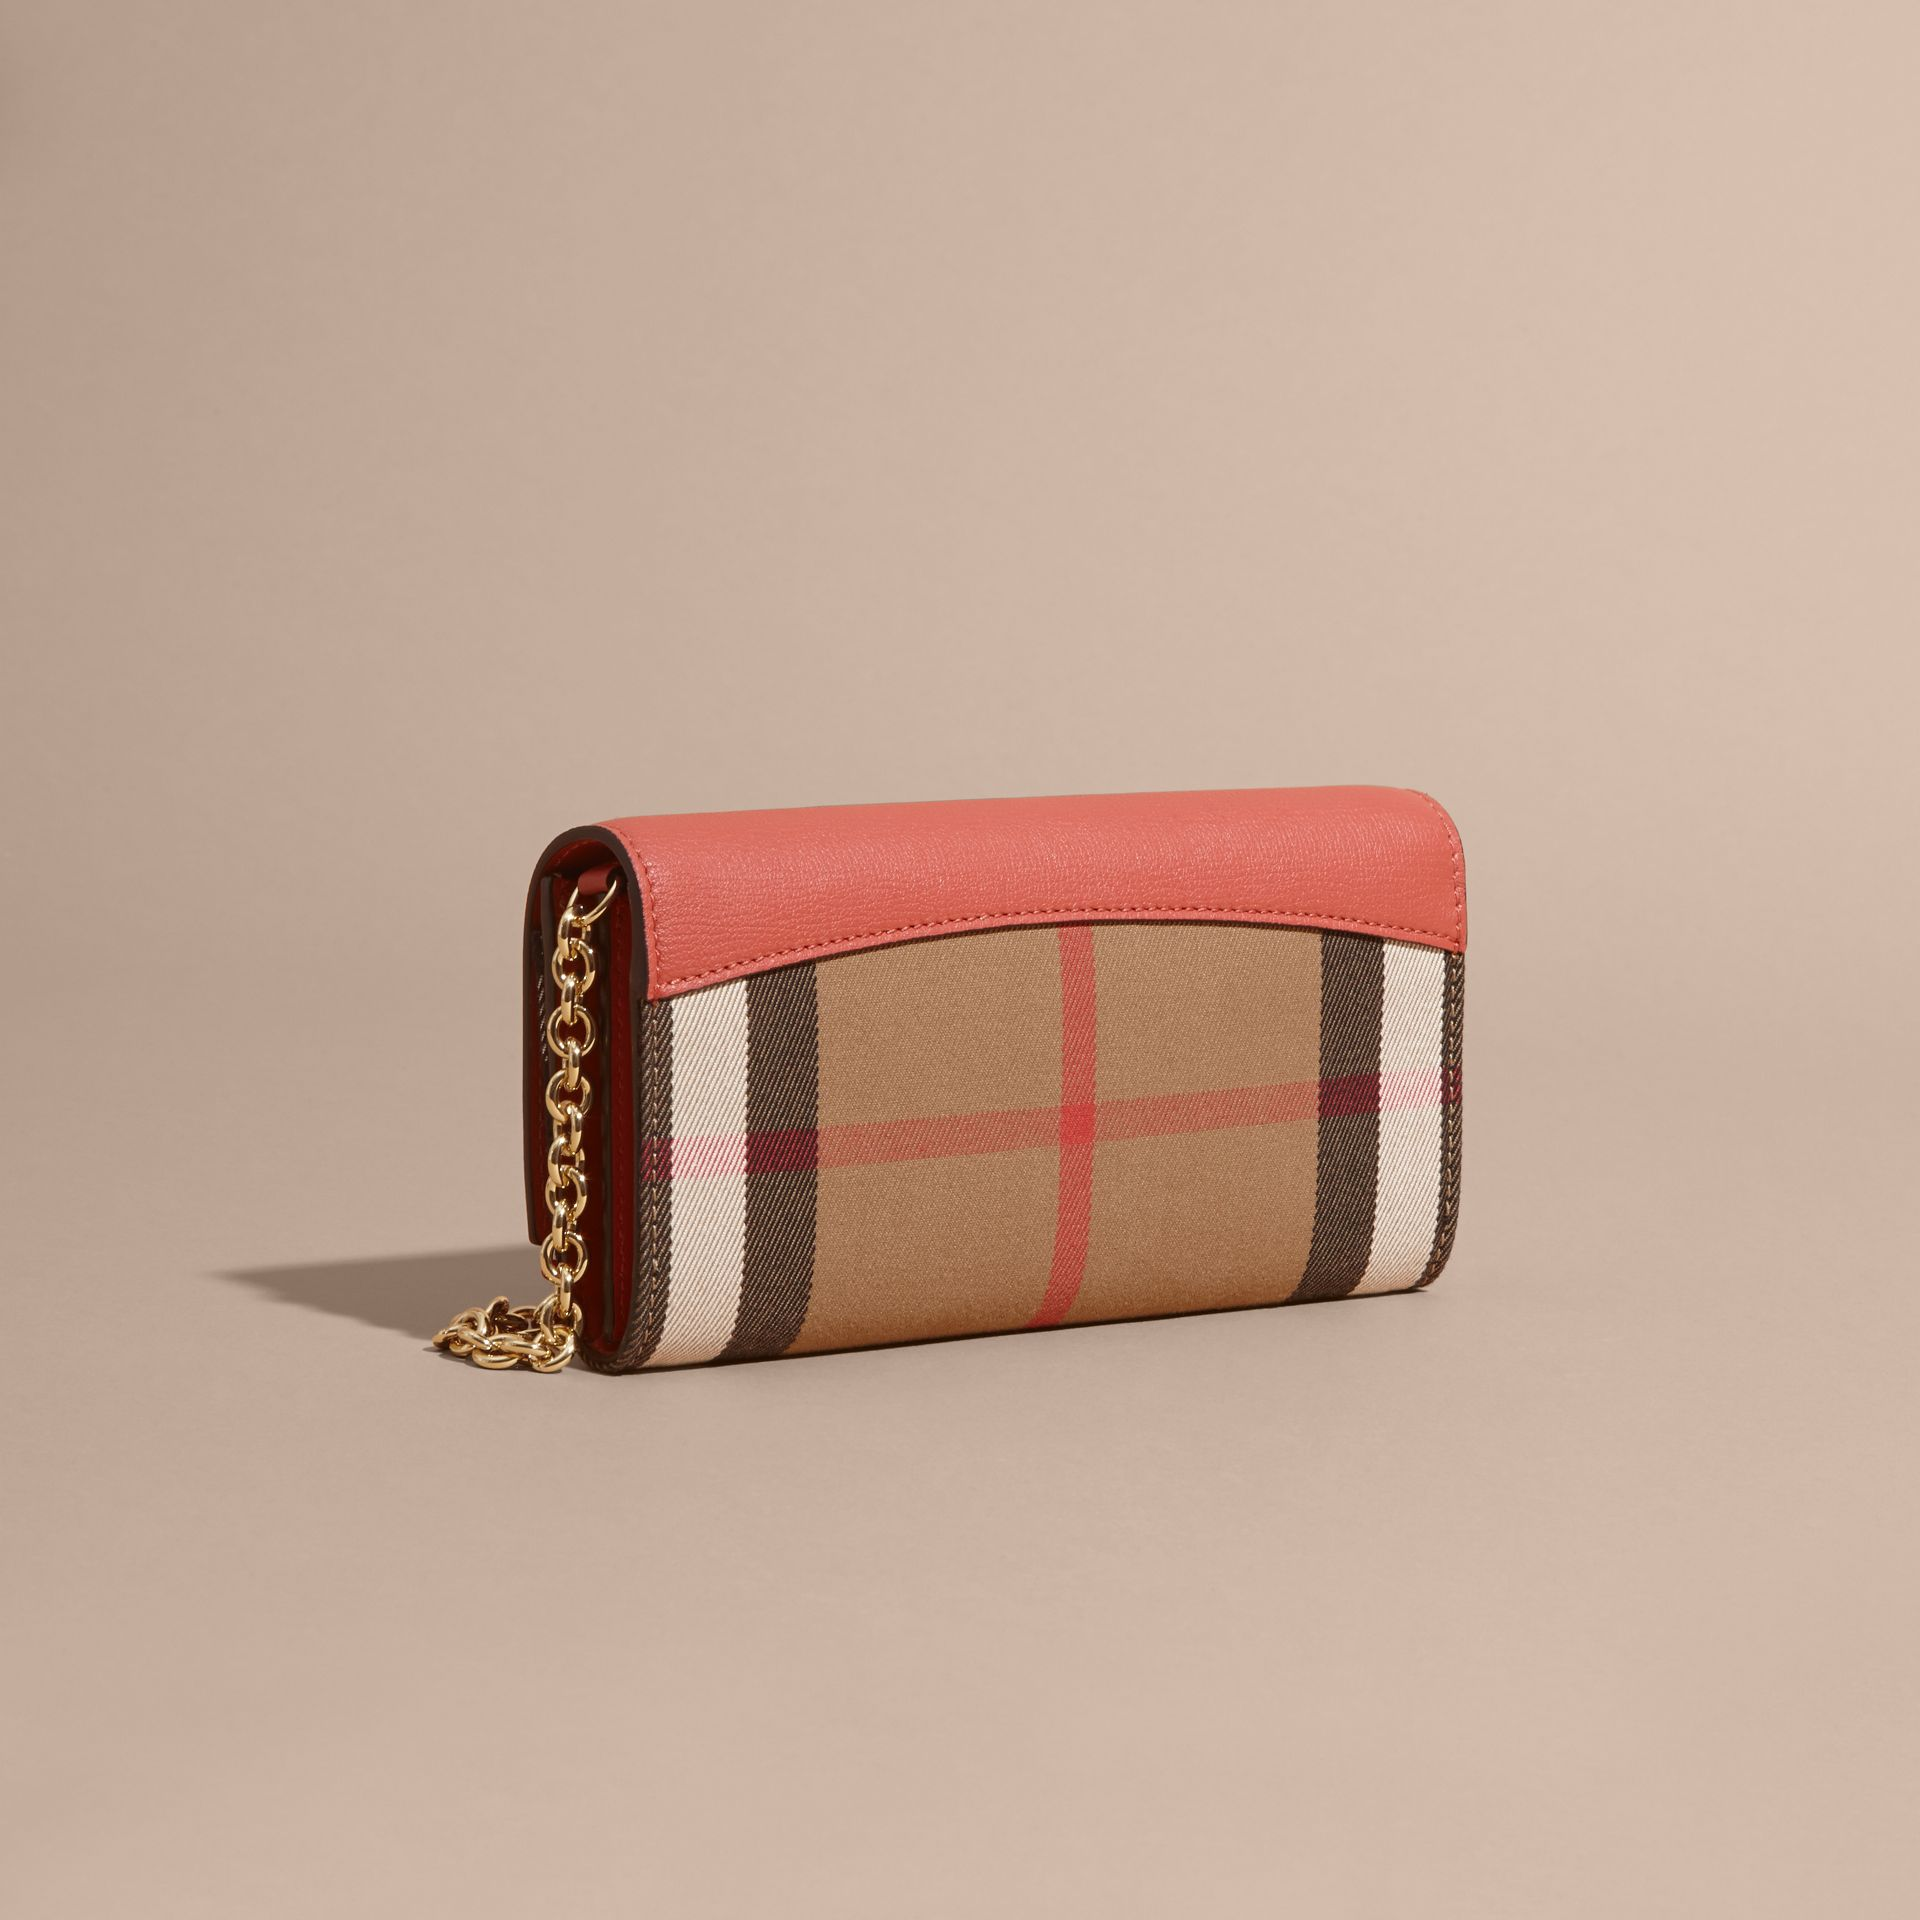 House Check and Leather Wallet with Chain in Cinnamon Red - Women | Burberry Australia - gallery image 3